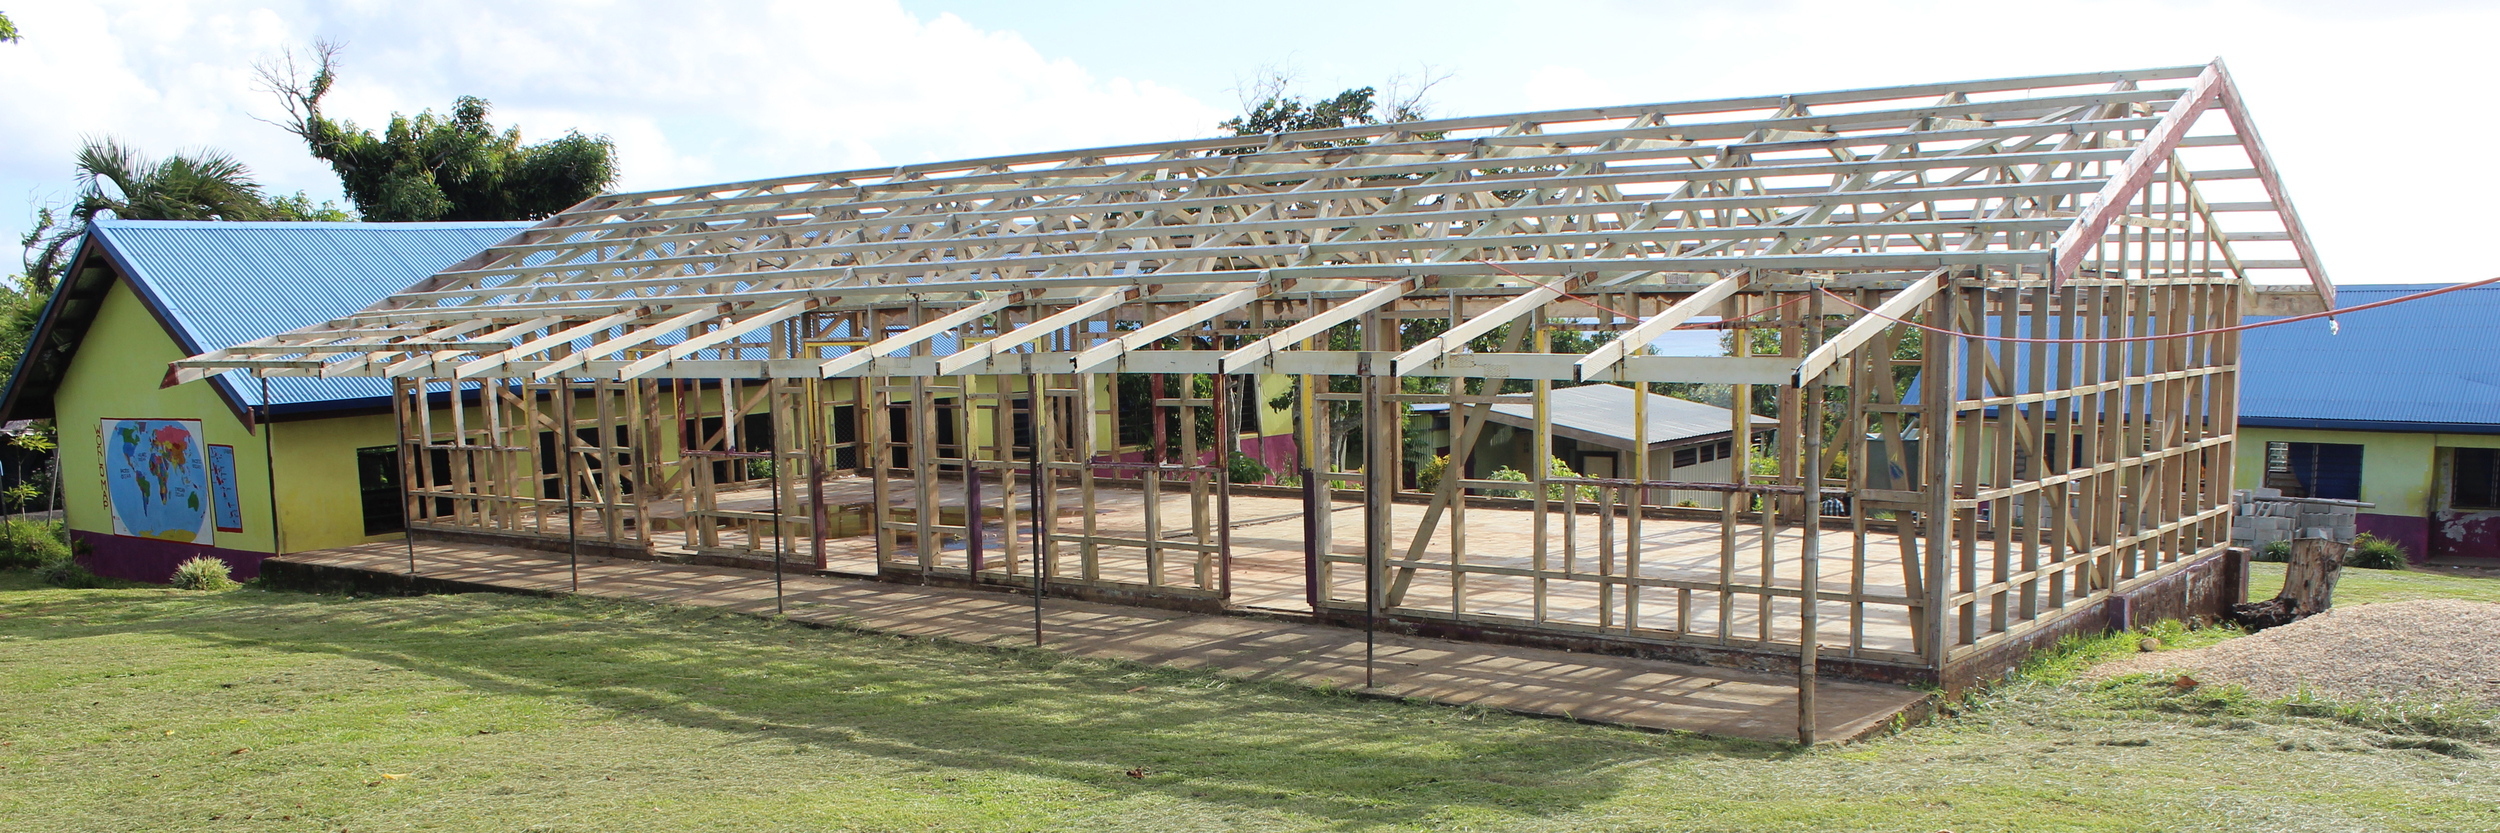 Classroom to be Reconstructed